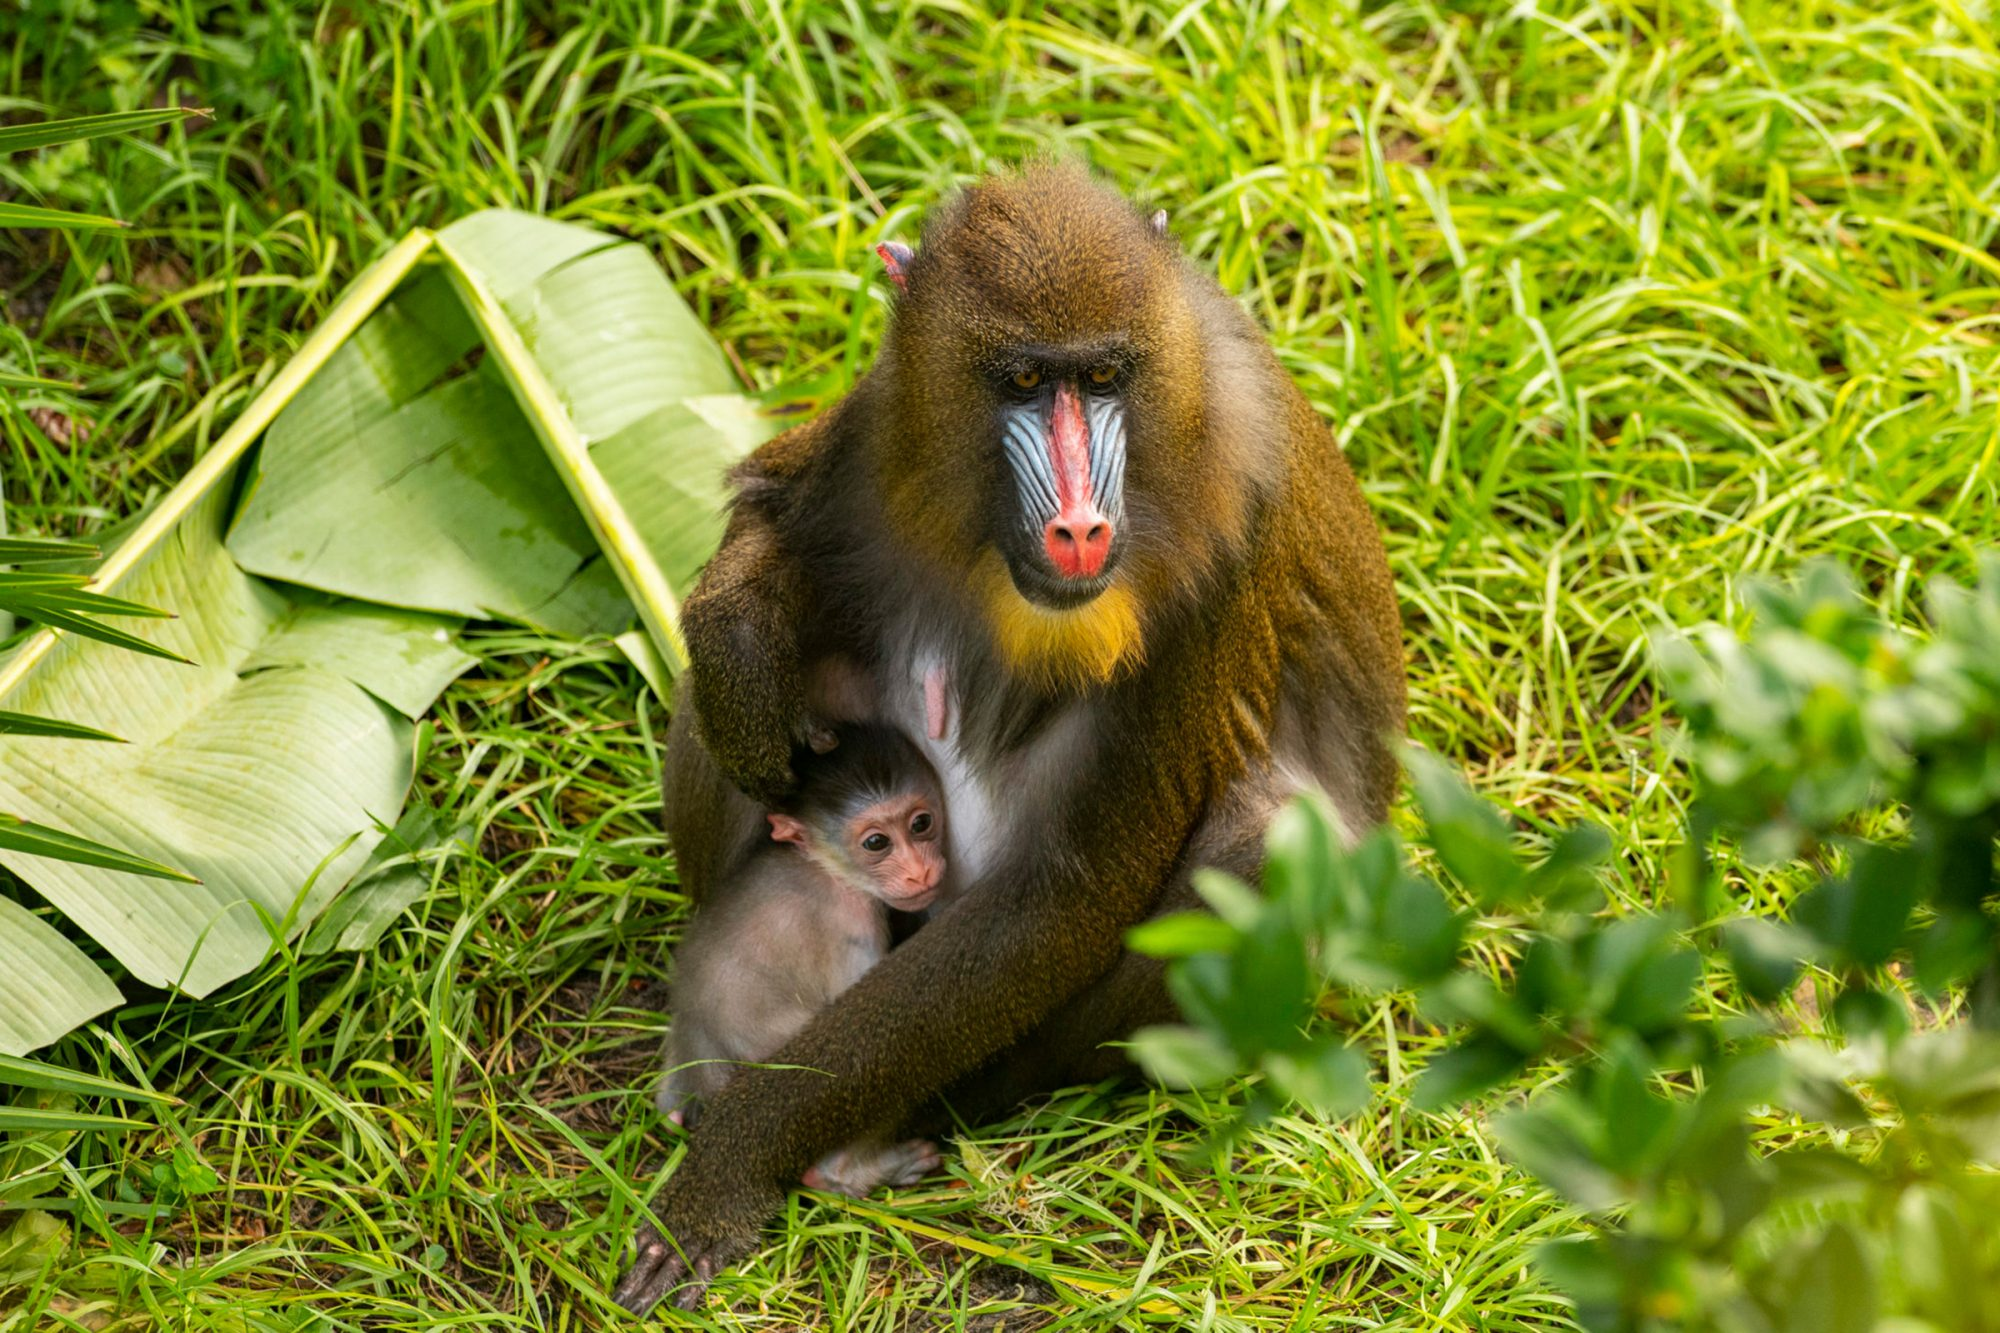 A baby mandrill, seen here with mother Scarlett, was born July 25, 2020, at Disney's Animal Kingdom